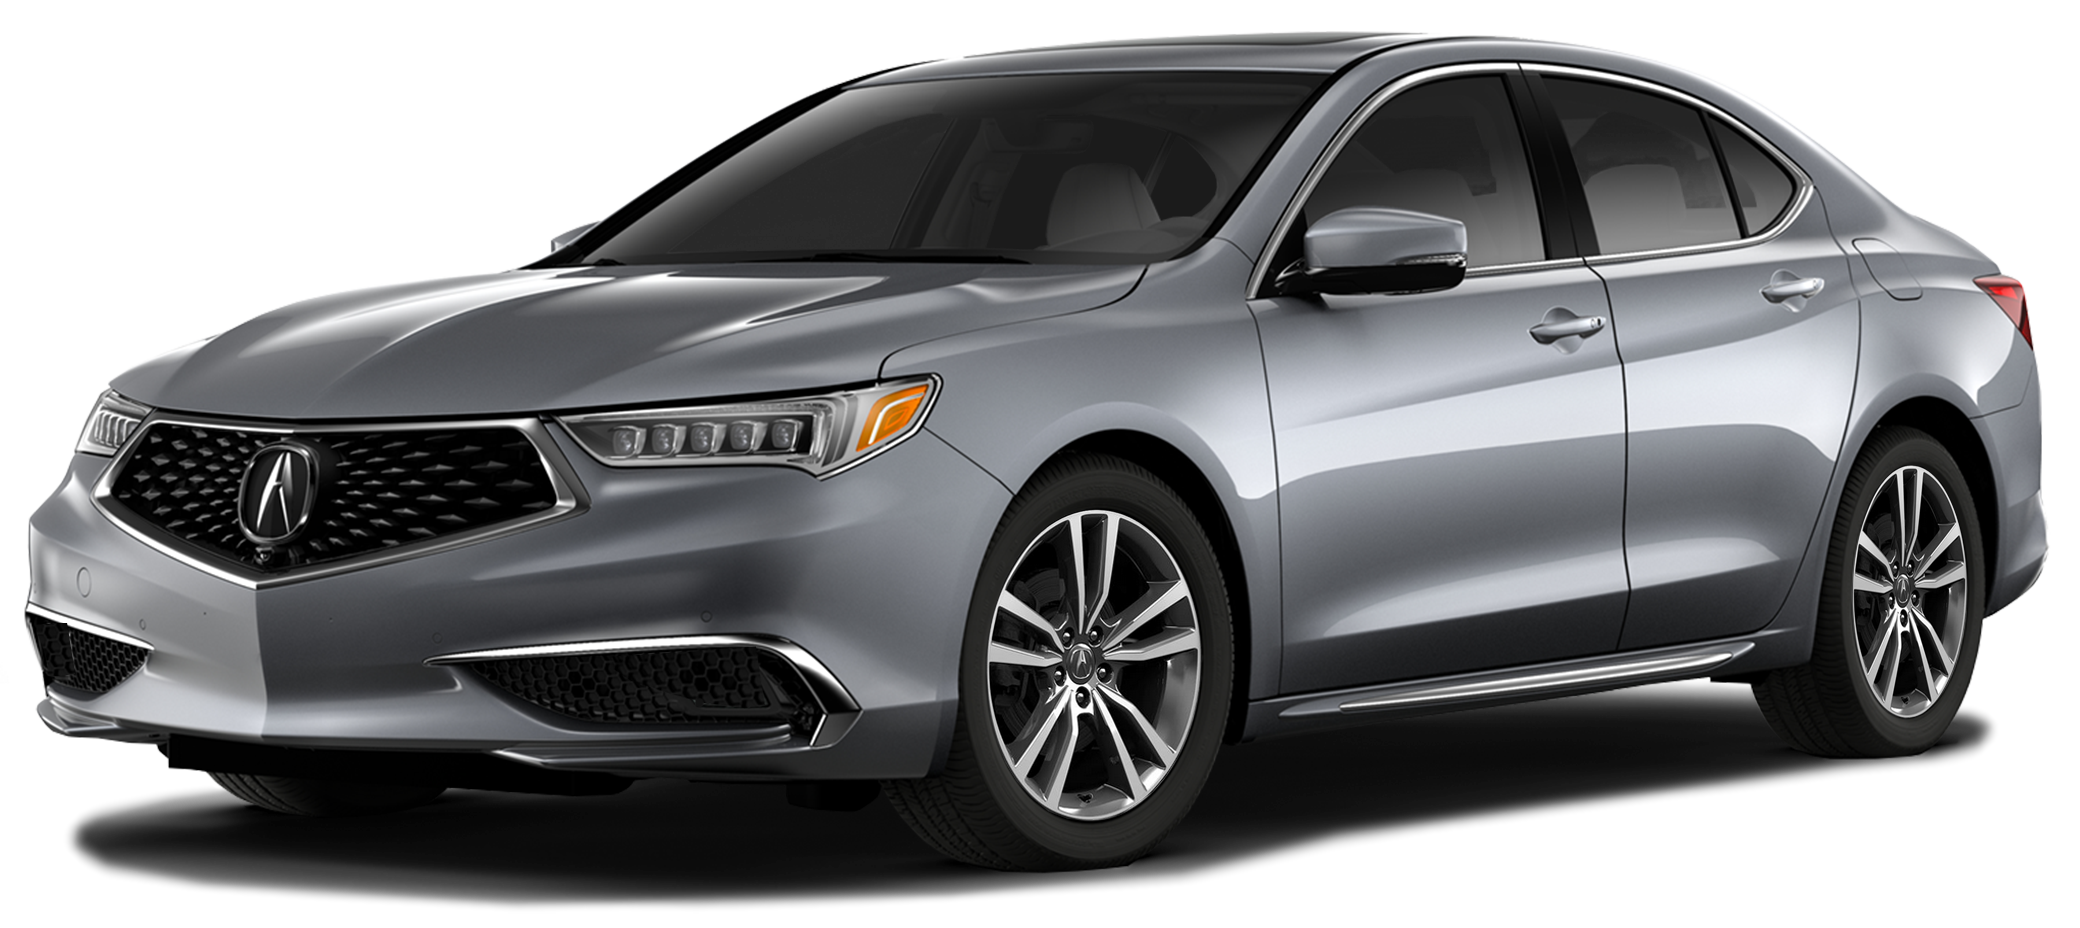 http://images.dealer.com/ddc/vehicles/2020/Acura/TLX/Sedan/trim_35L_Tech_Pkg_d260dc/perspective/front-left/2020_76.png